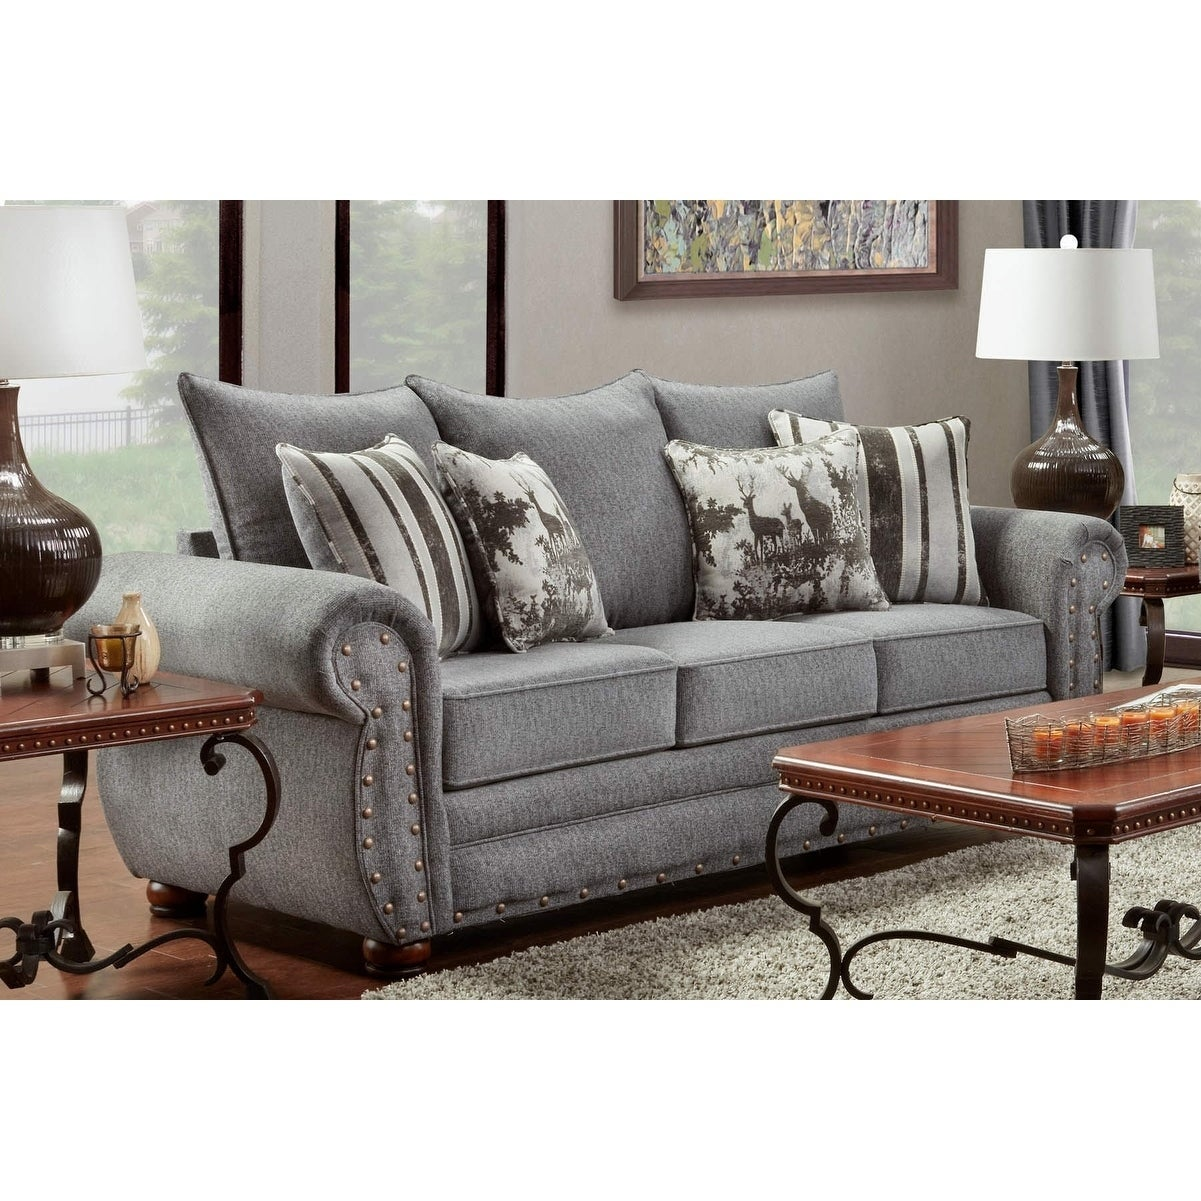 American Furniture Clics Model B3103 Erss Elk River Storm Sofa On Free Shipping Today 18542036